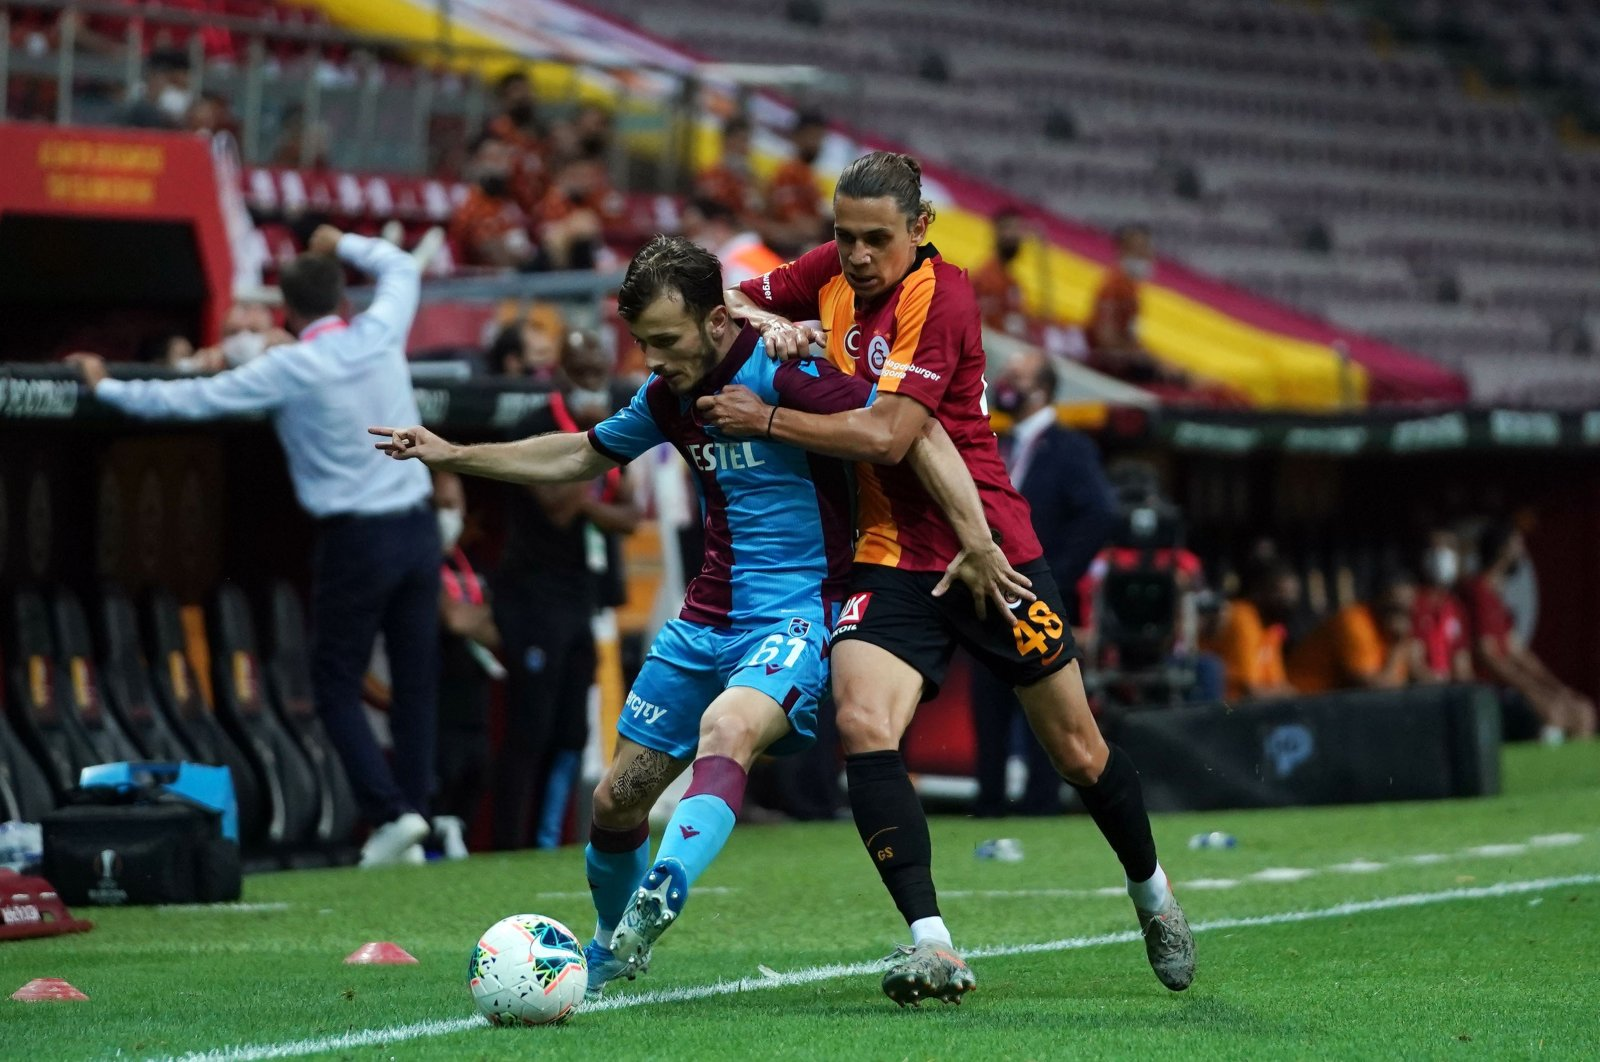 Trabzonspor's Abdülkadir Parmak and Galatasaray's Taylan Antalyalı compete for the ball during a Süper Lig match in Istanbul, Turkey, July 5, 2020. (IHA Photo)